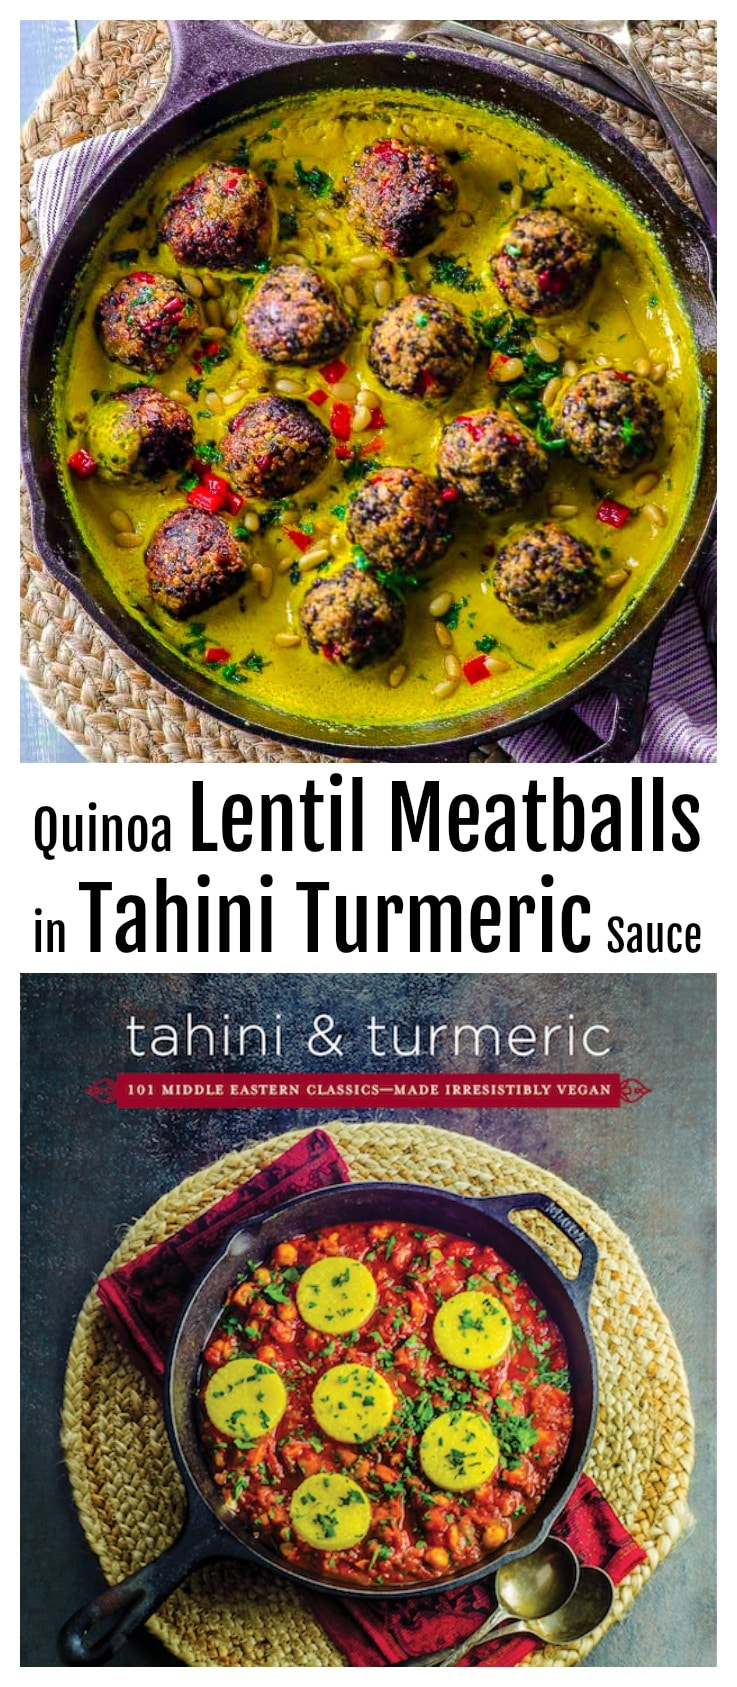 Quinoa Lentil Meatballs in Tahini-Turmeric Sauce - We created this recipes to celebrate our Cookbook launch. This easy recipe creates a magnificent dish in both taste and presentation.  Best yet, you can cook these meatless meatballs in either their vegetarian or vegan preparations without losing any of their incredibly rich flavor. #Vegan #cookbook #Midlle Eastern #Tahini #Turmeric #tahiniandturmeric